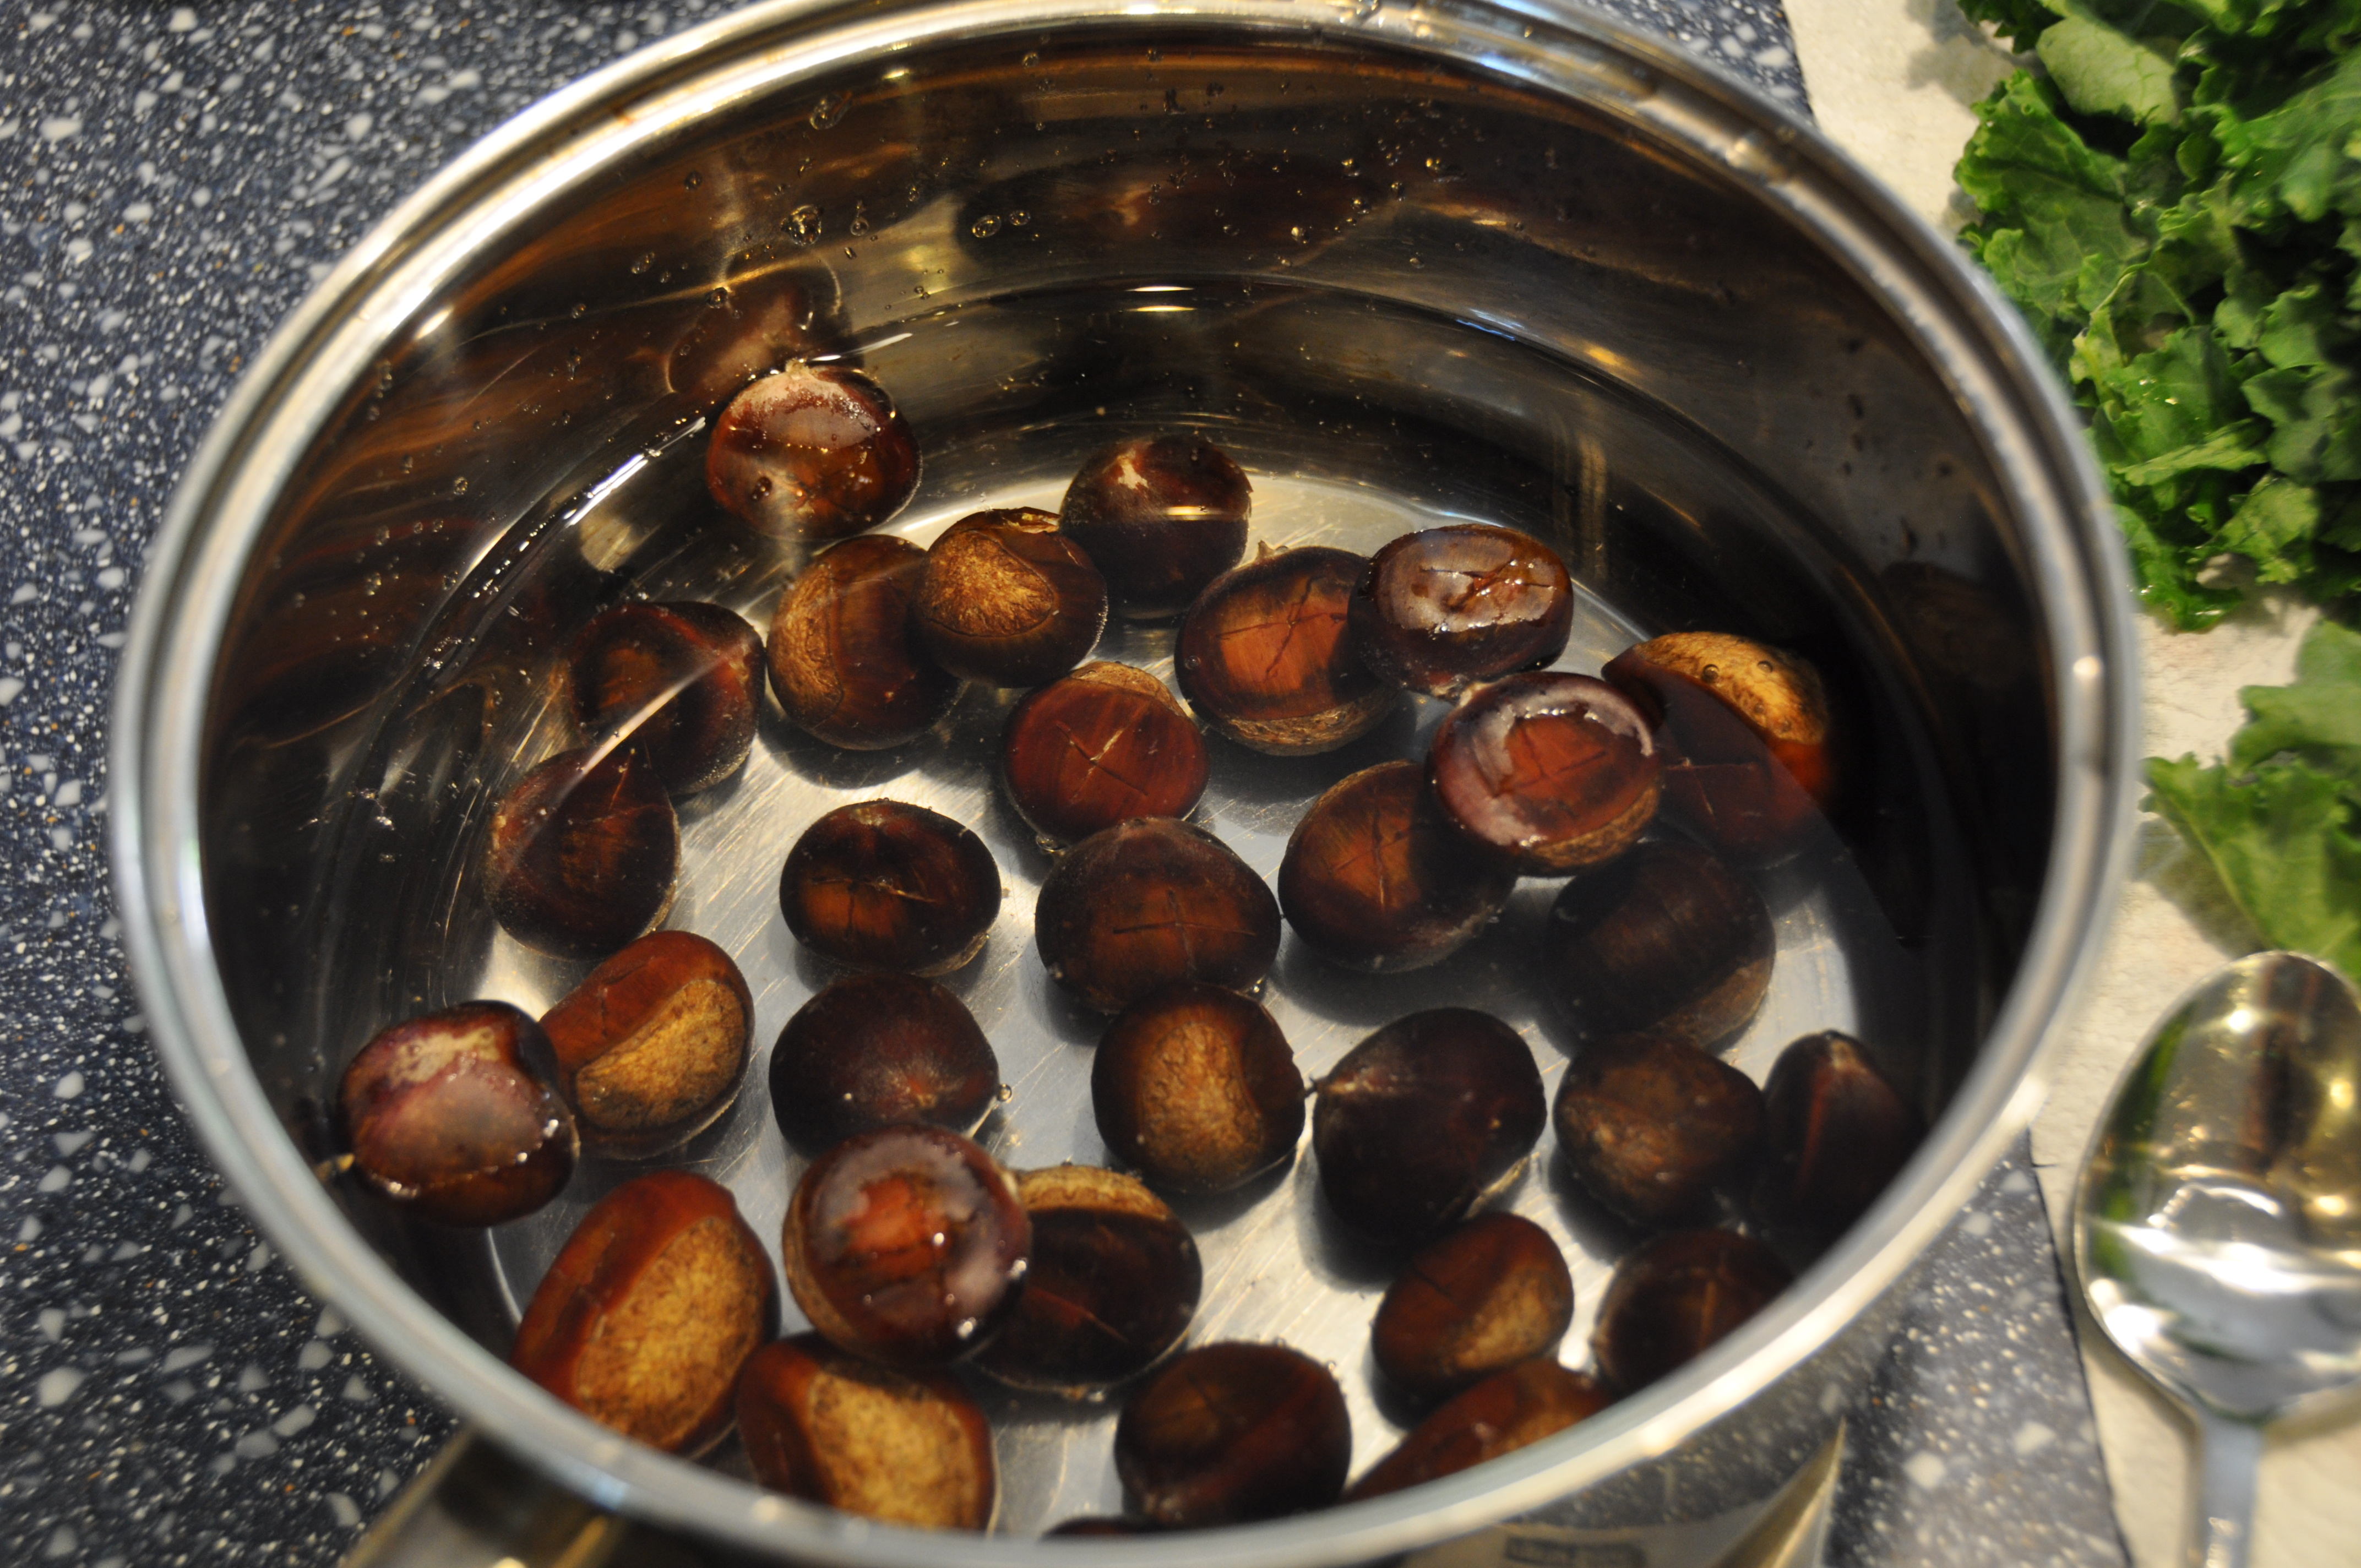 What do you do with Chestnuts? – The Savvy Sister